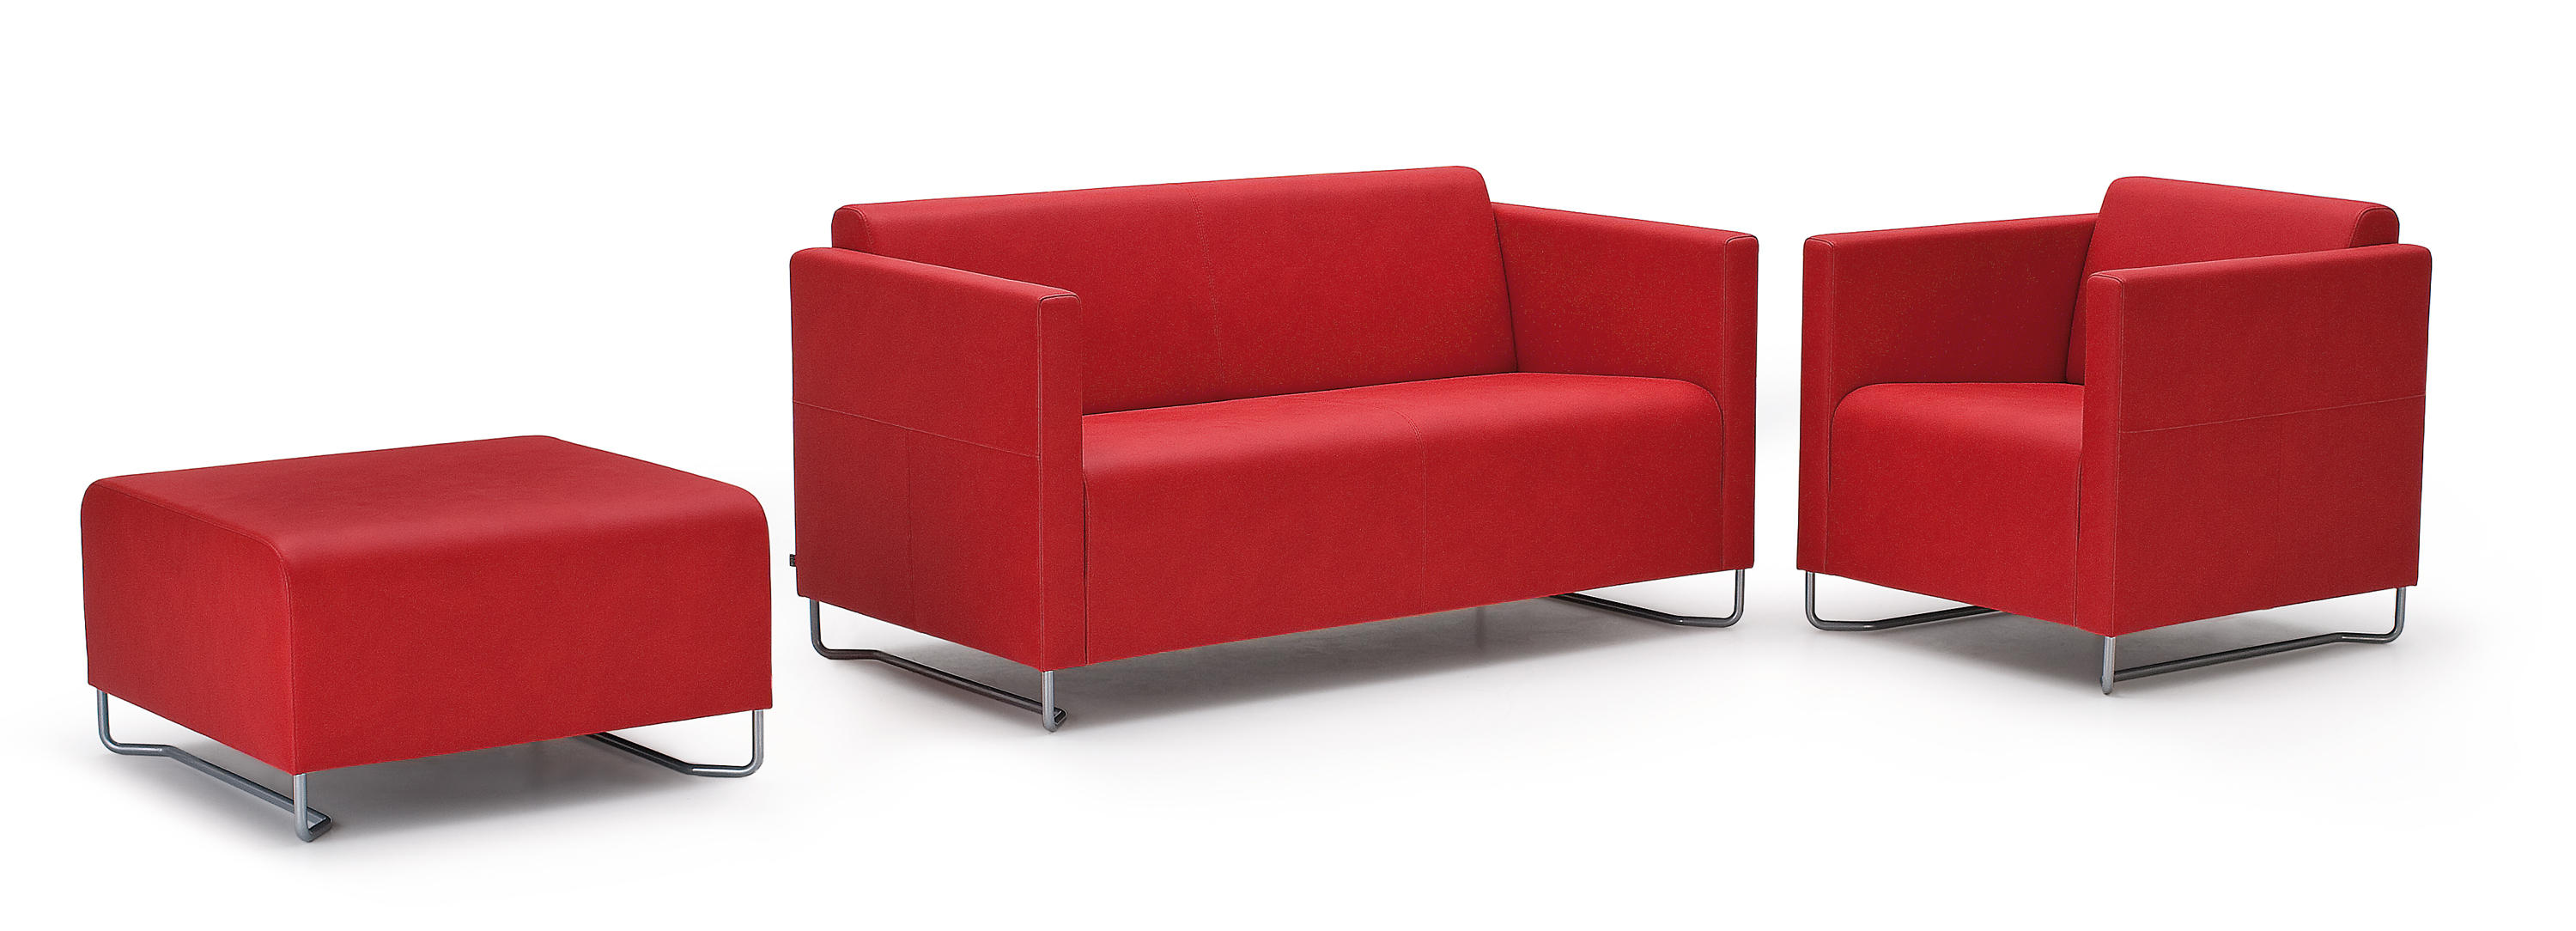 Iglo Armchairs From Noti Architonic